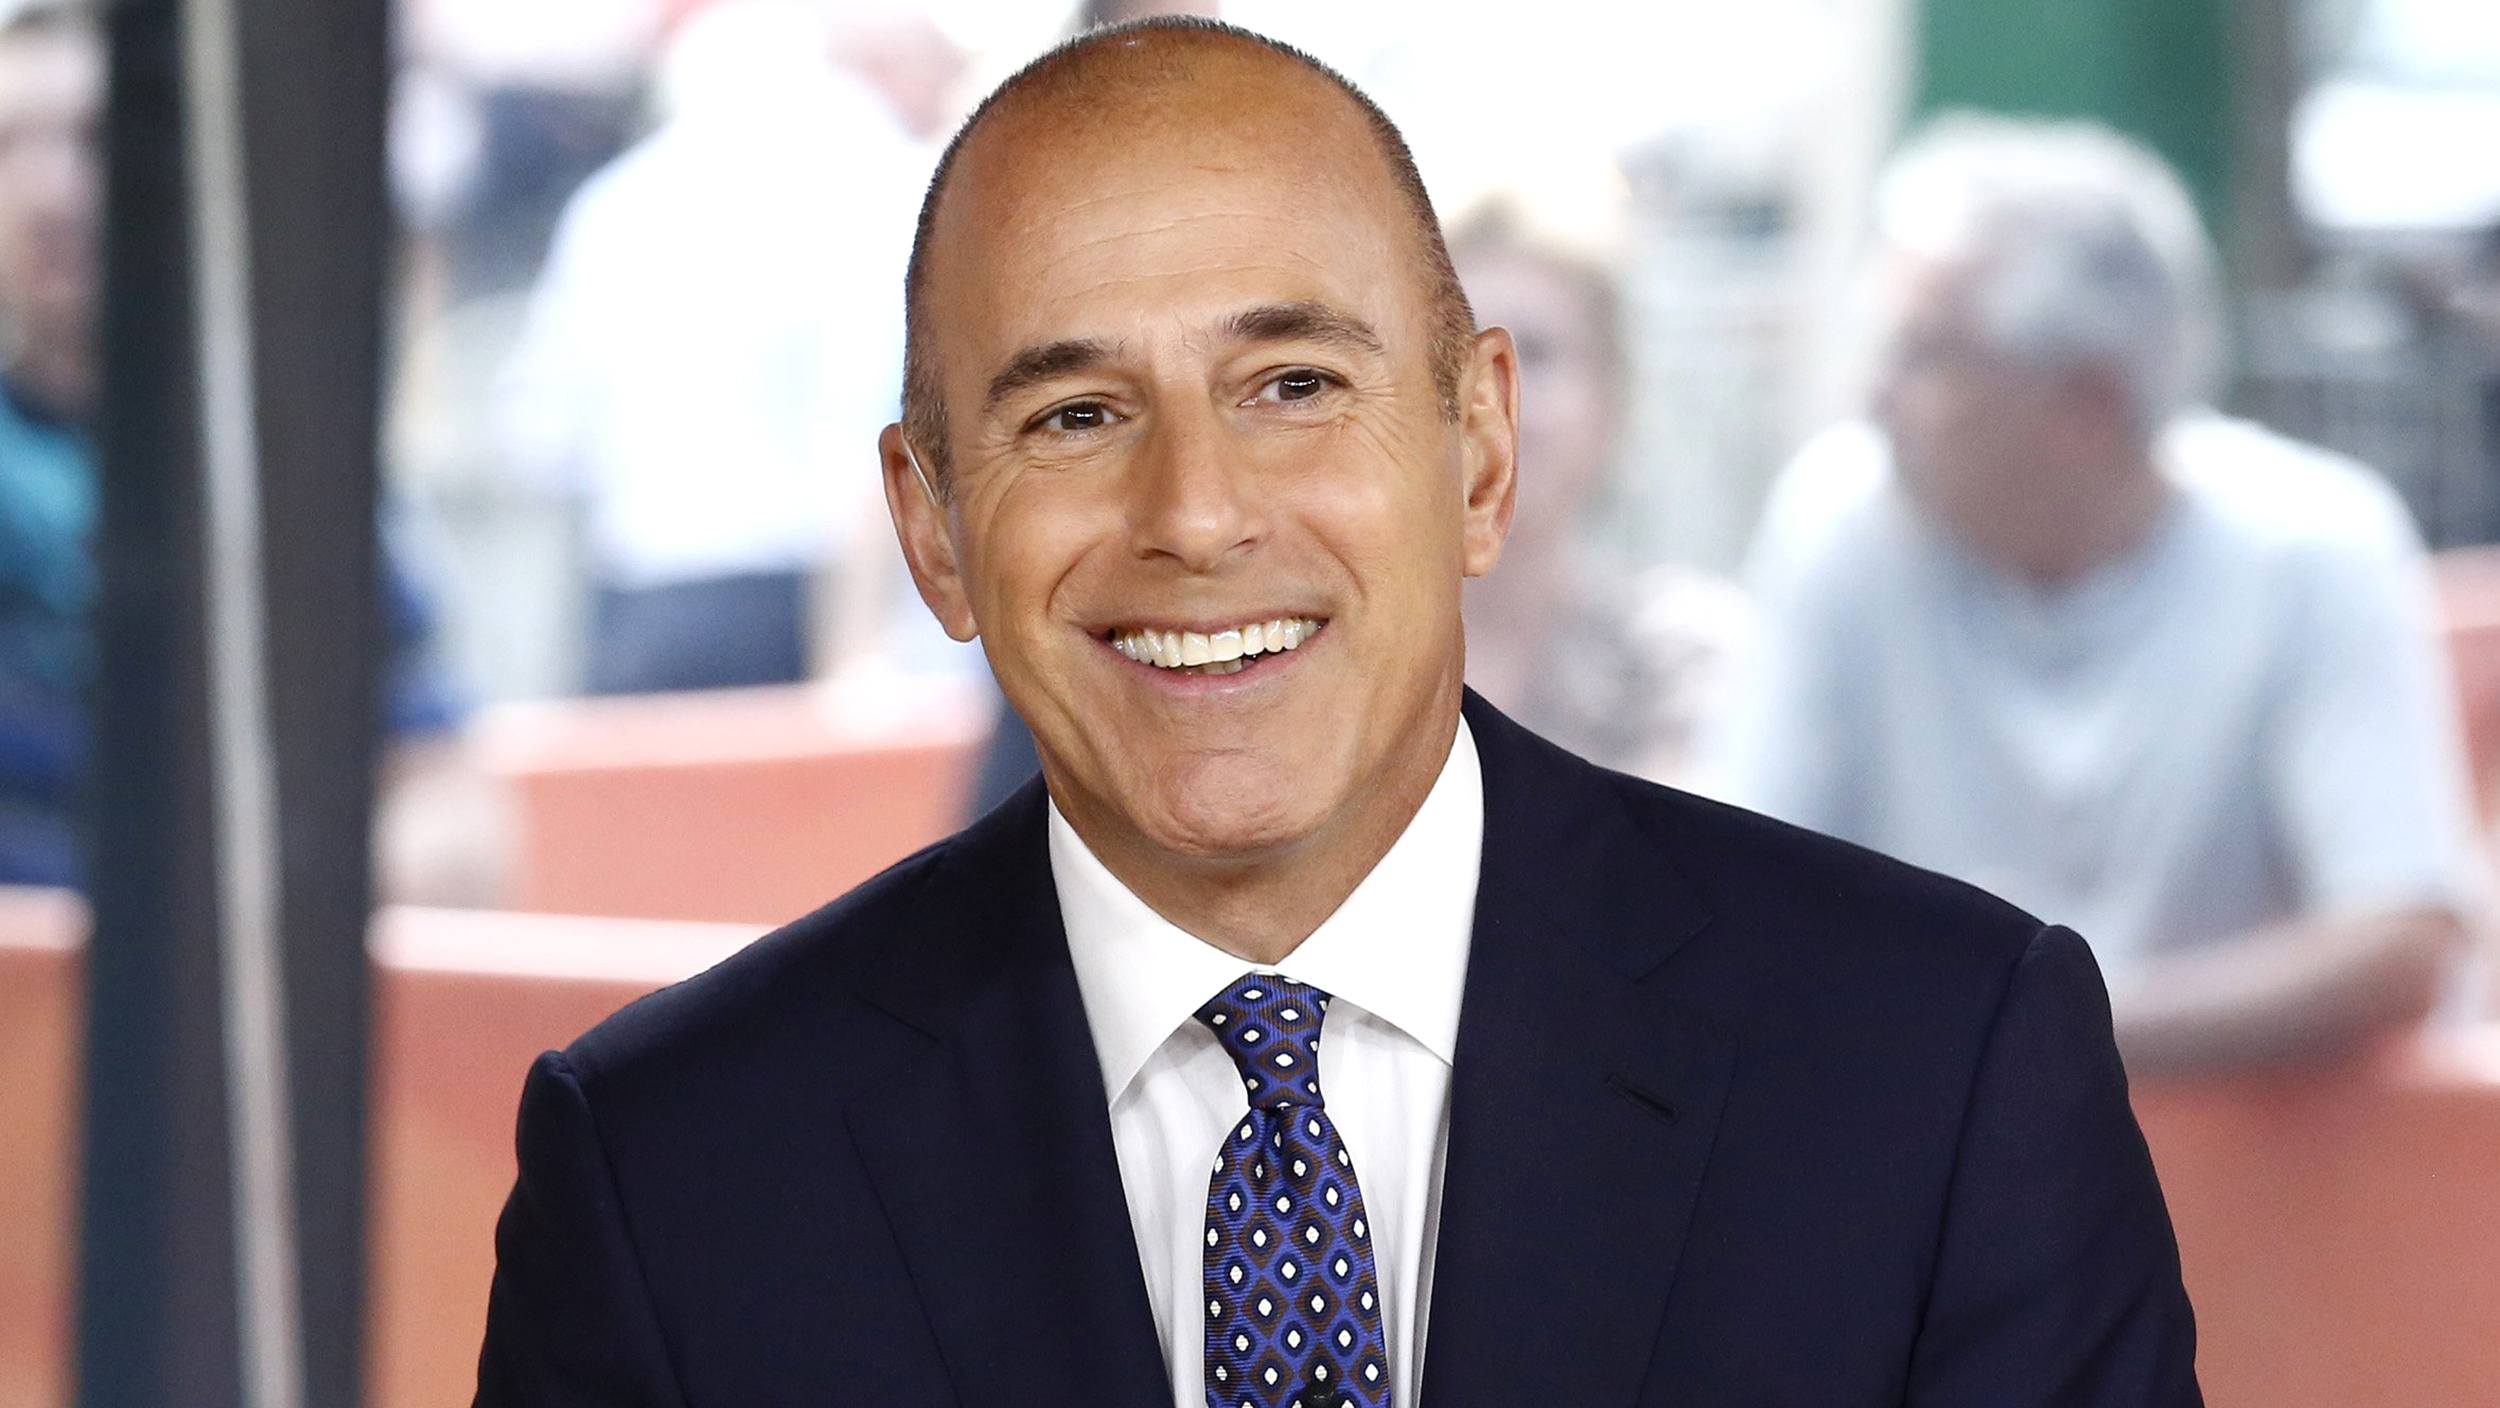 Matt Lauer on Today